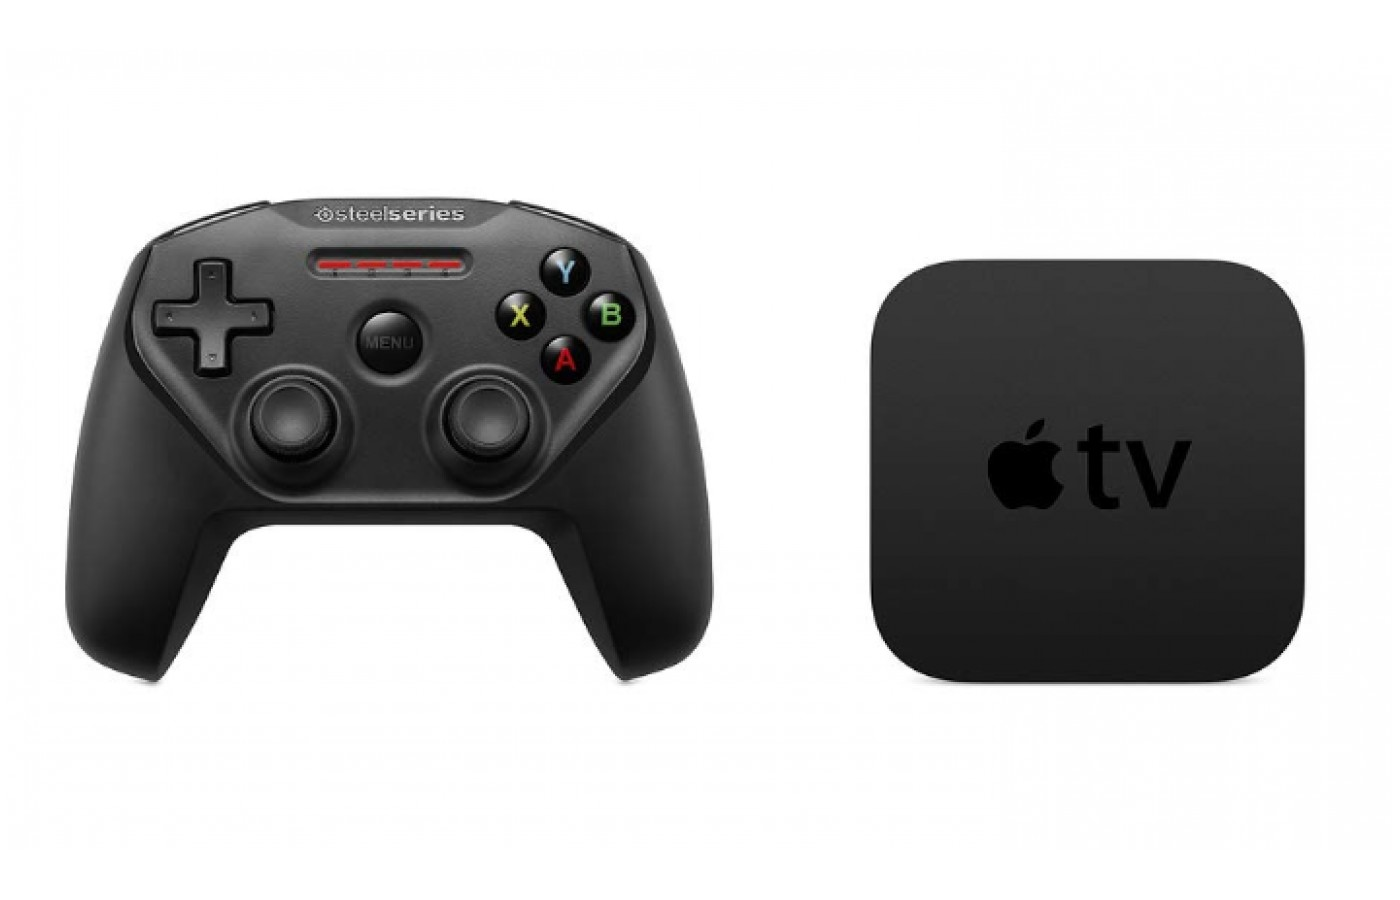 Apple maybe intends to add more controller friendly games in the future, even if they are not available just yet.